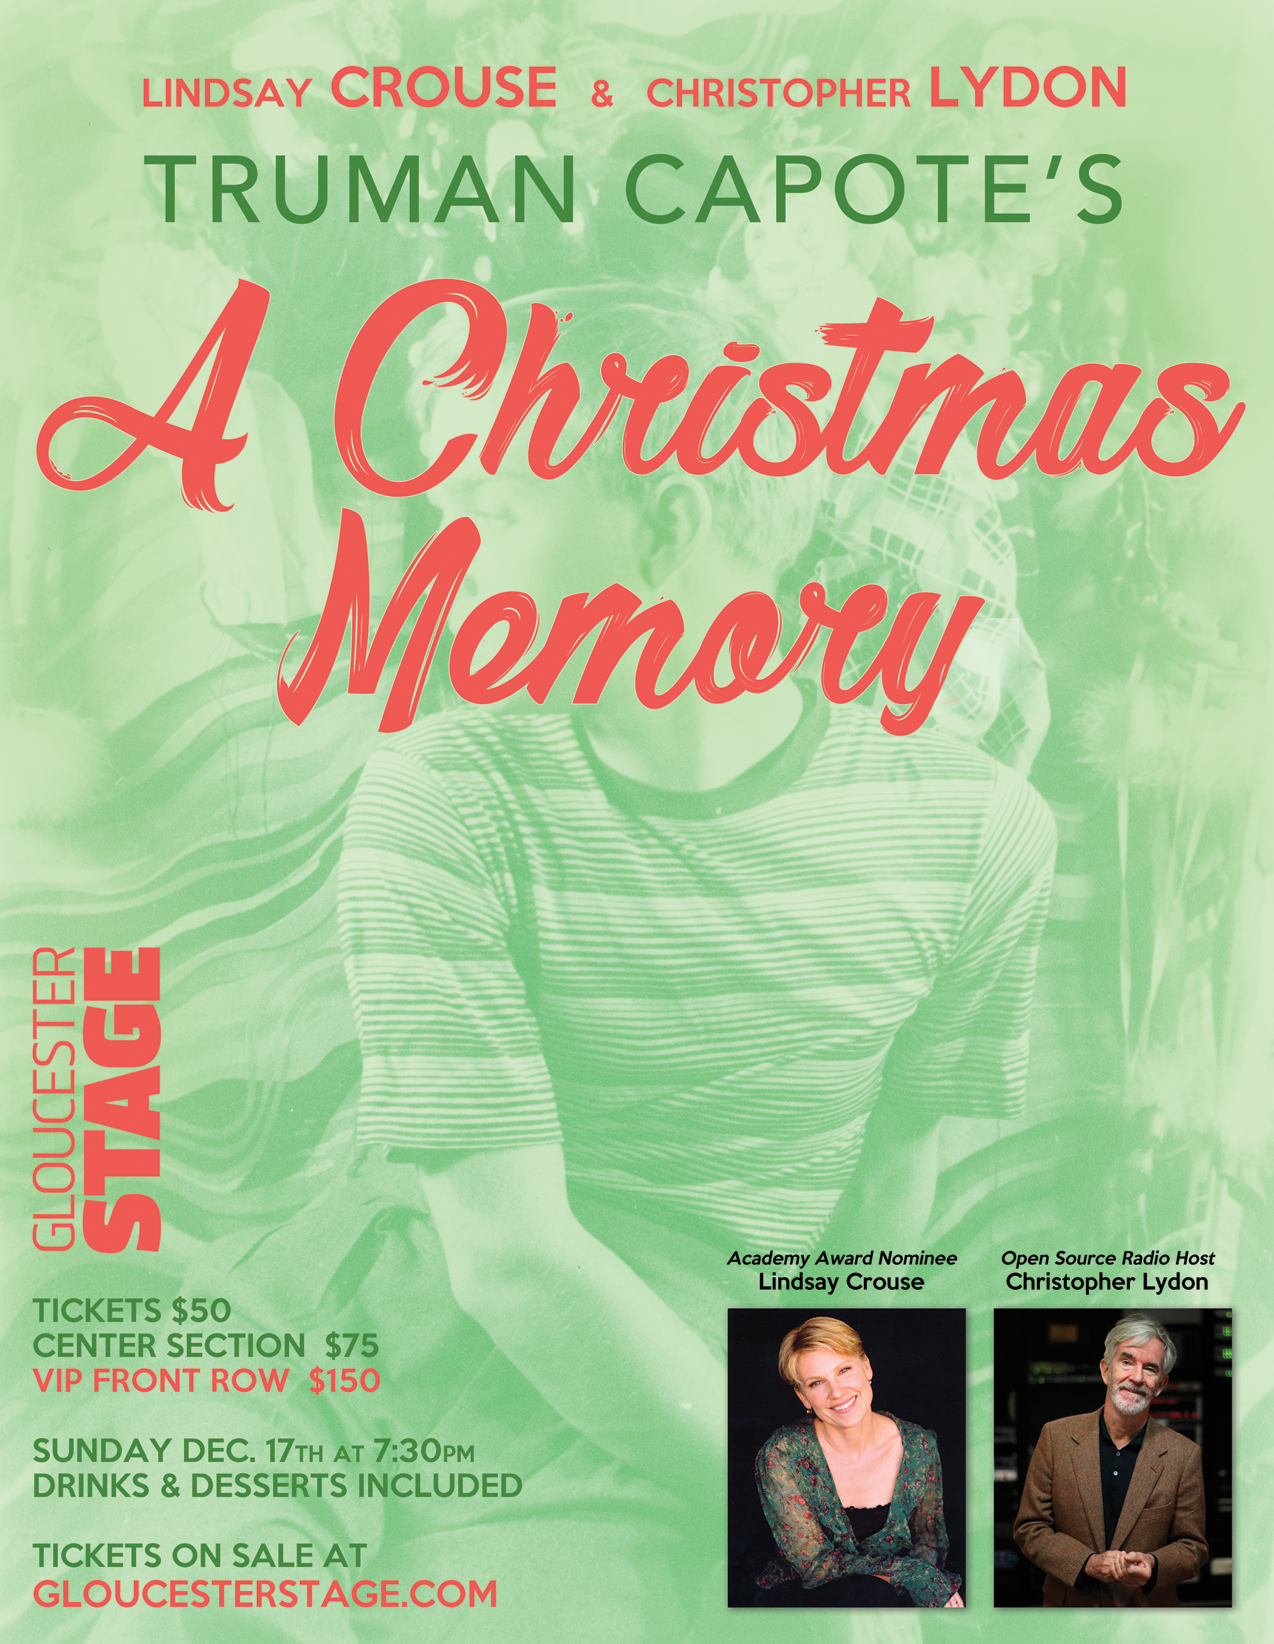 an analysis of a christmas memory by truman capote Truman capote was born in 1924 and died in 1984 based on his own boyhood in rural alabama in the 1930s, a christmas memory was orginally published in mademoiselle in 1956 and later was included in breakfast at tiffany's.